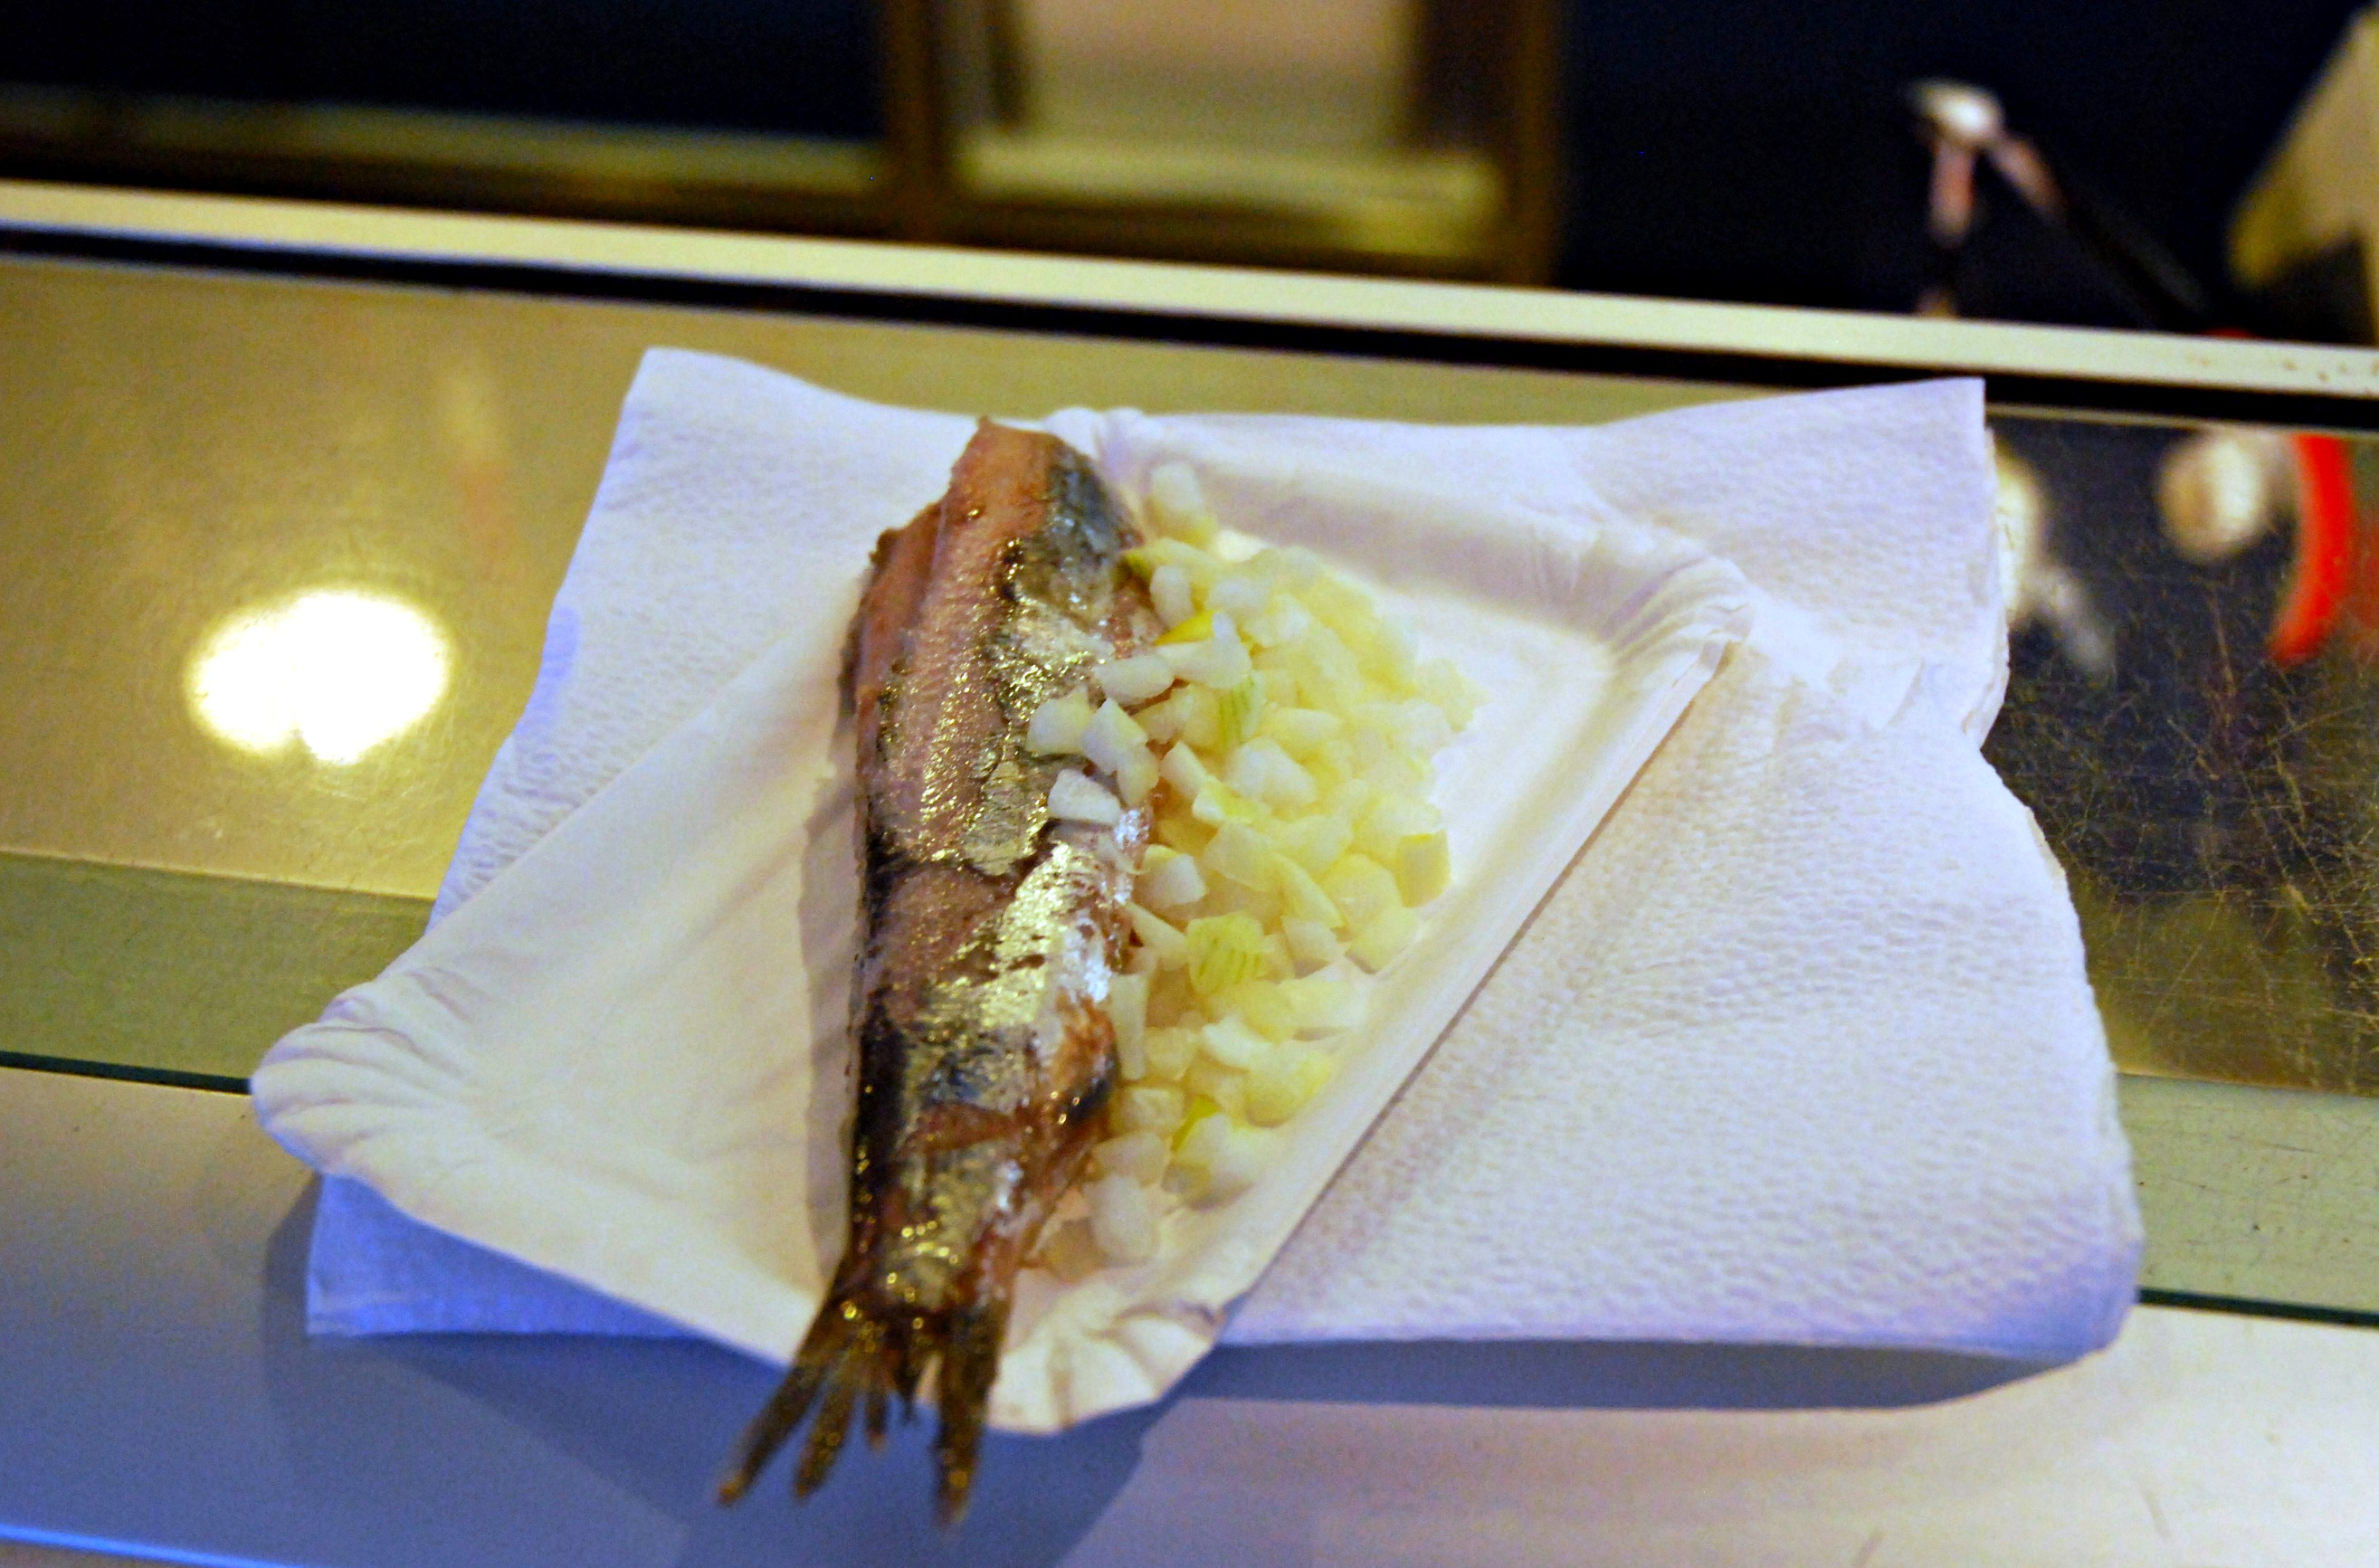 Herring with onions - simple yet punchy!